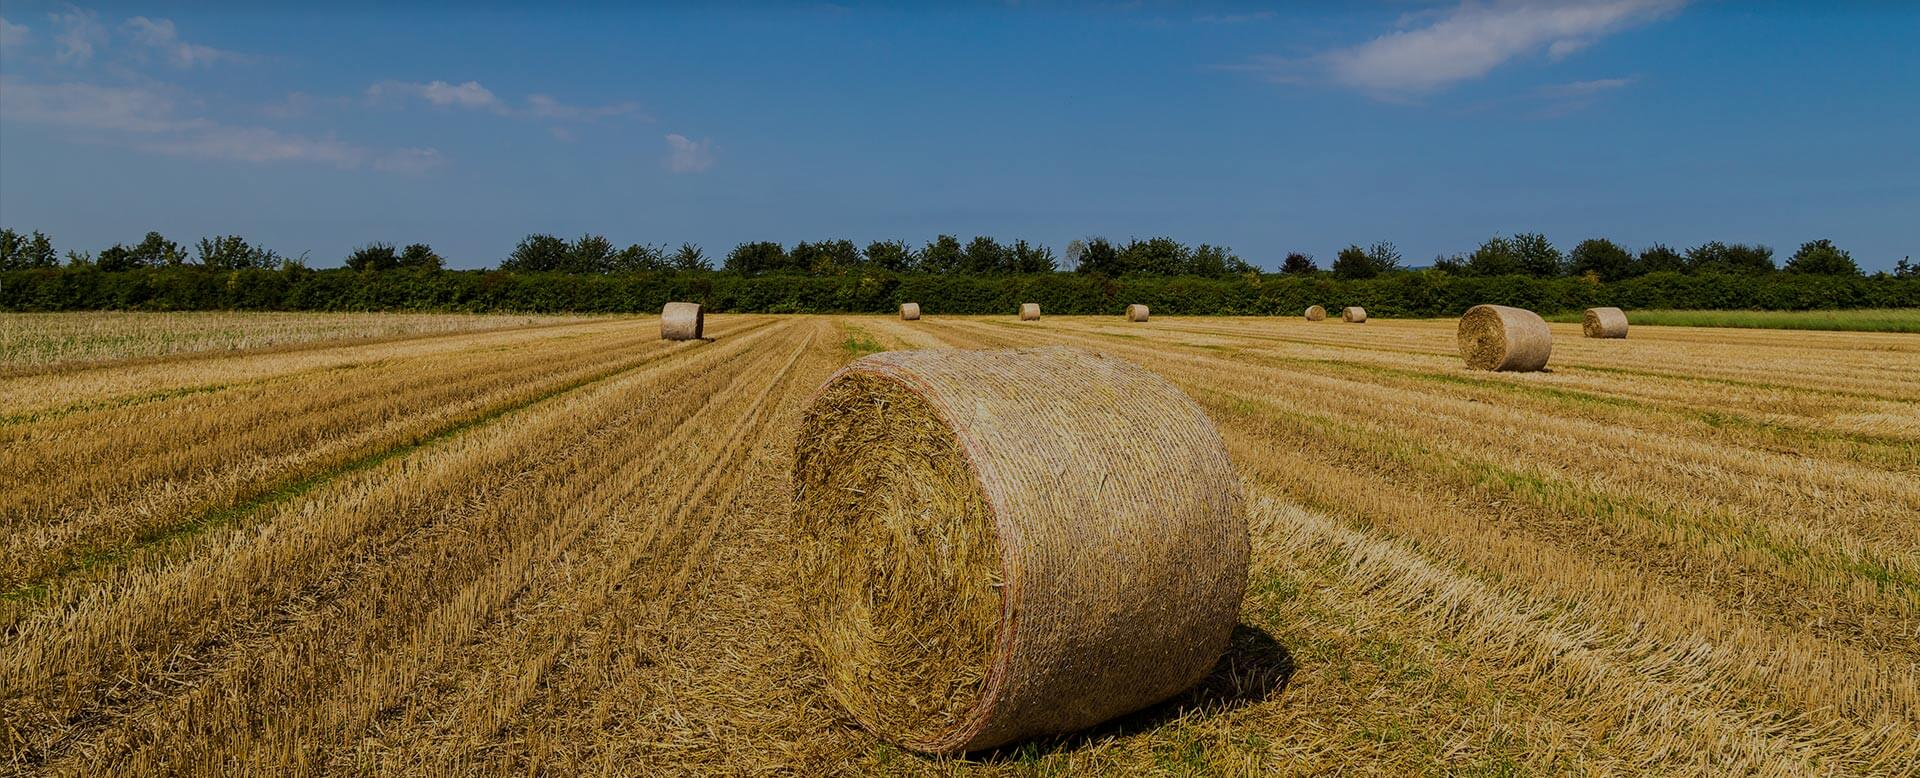 KSI Supply Bale Net